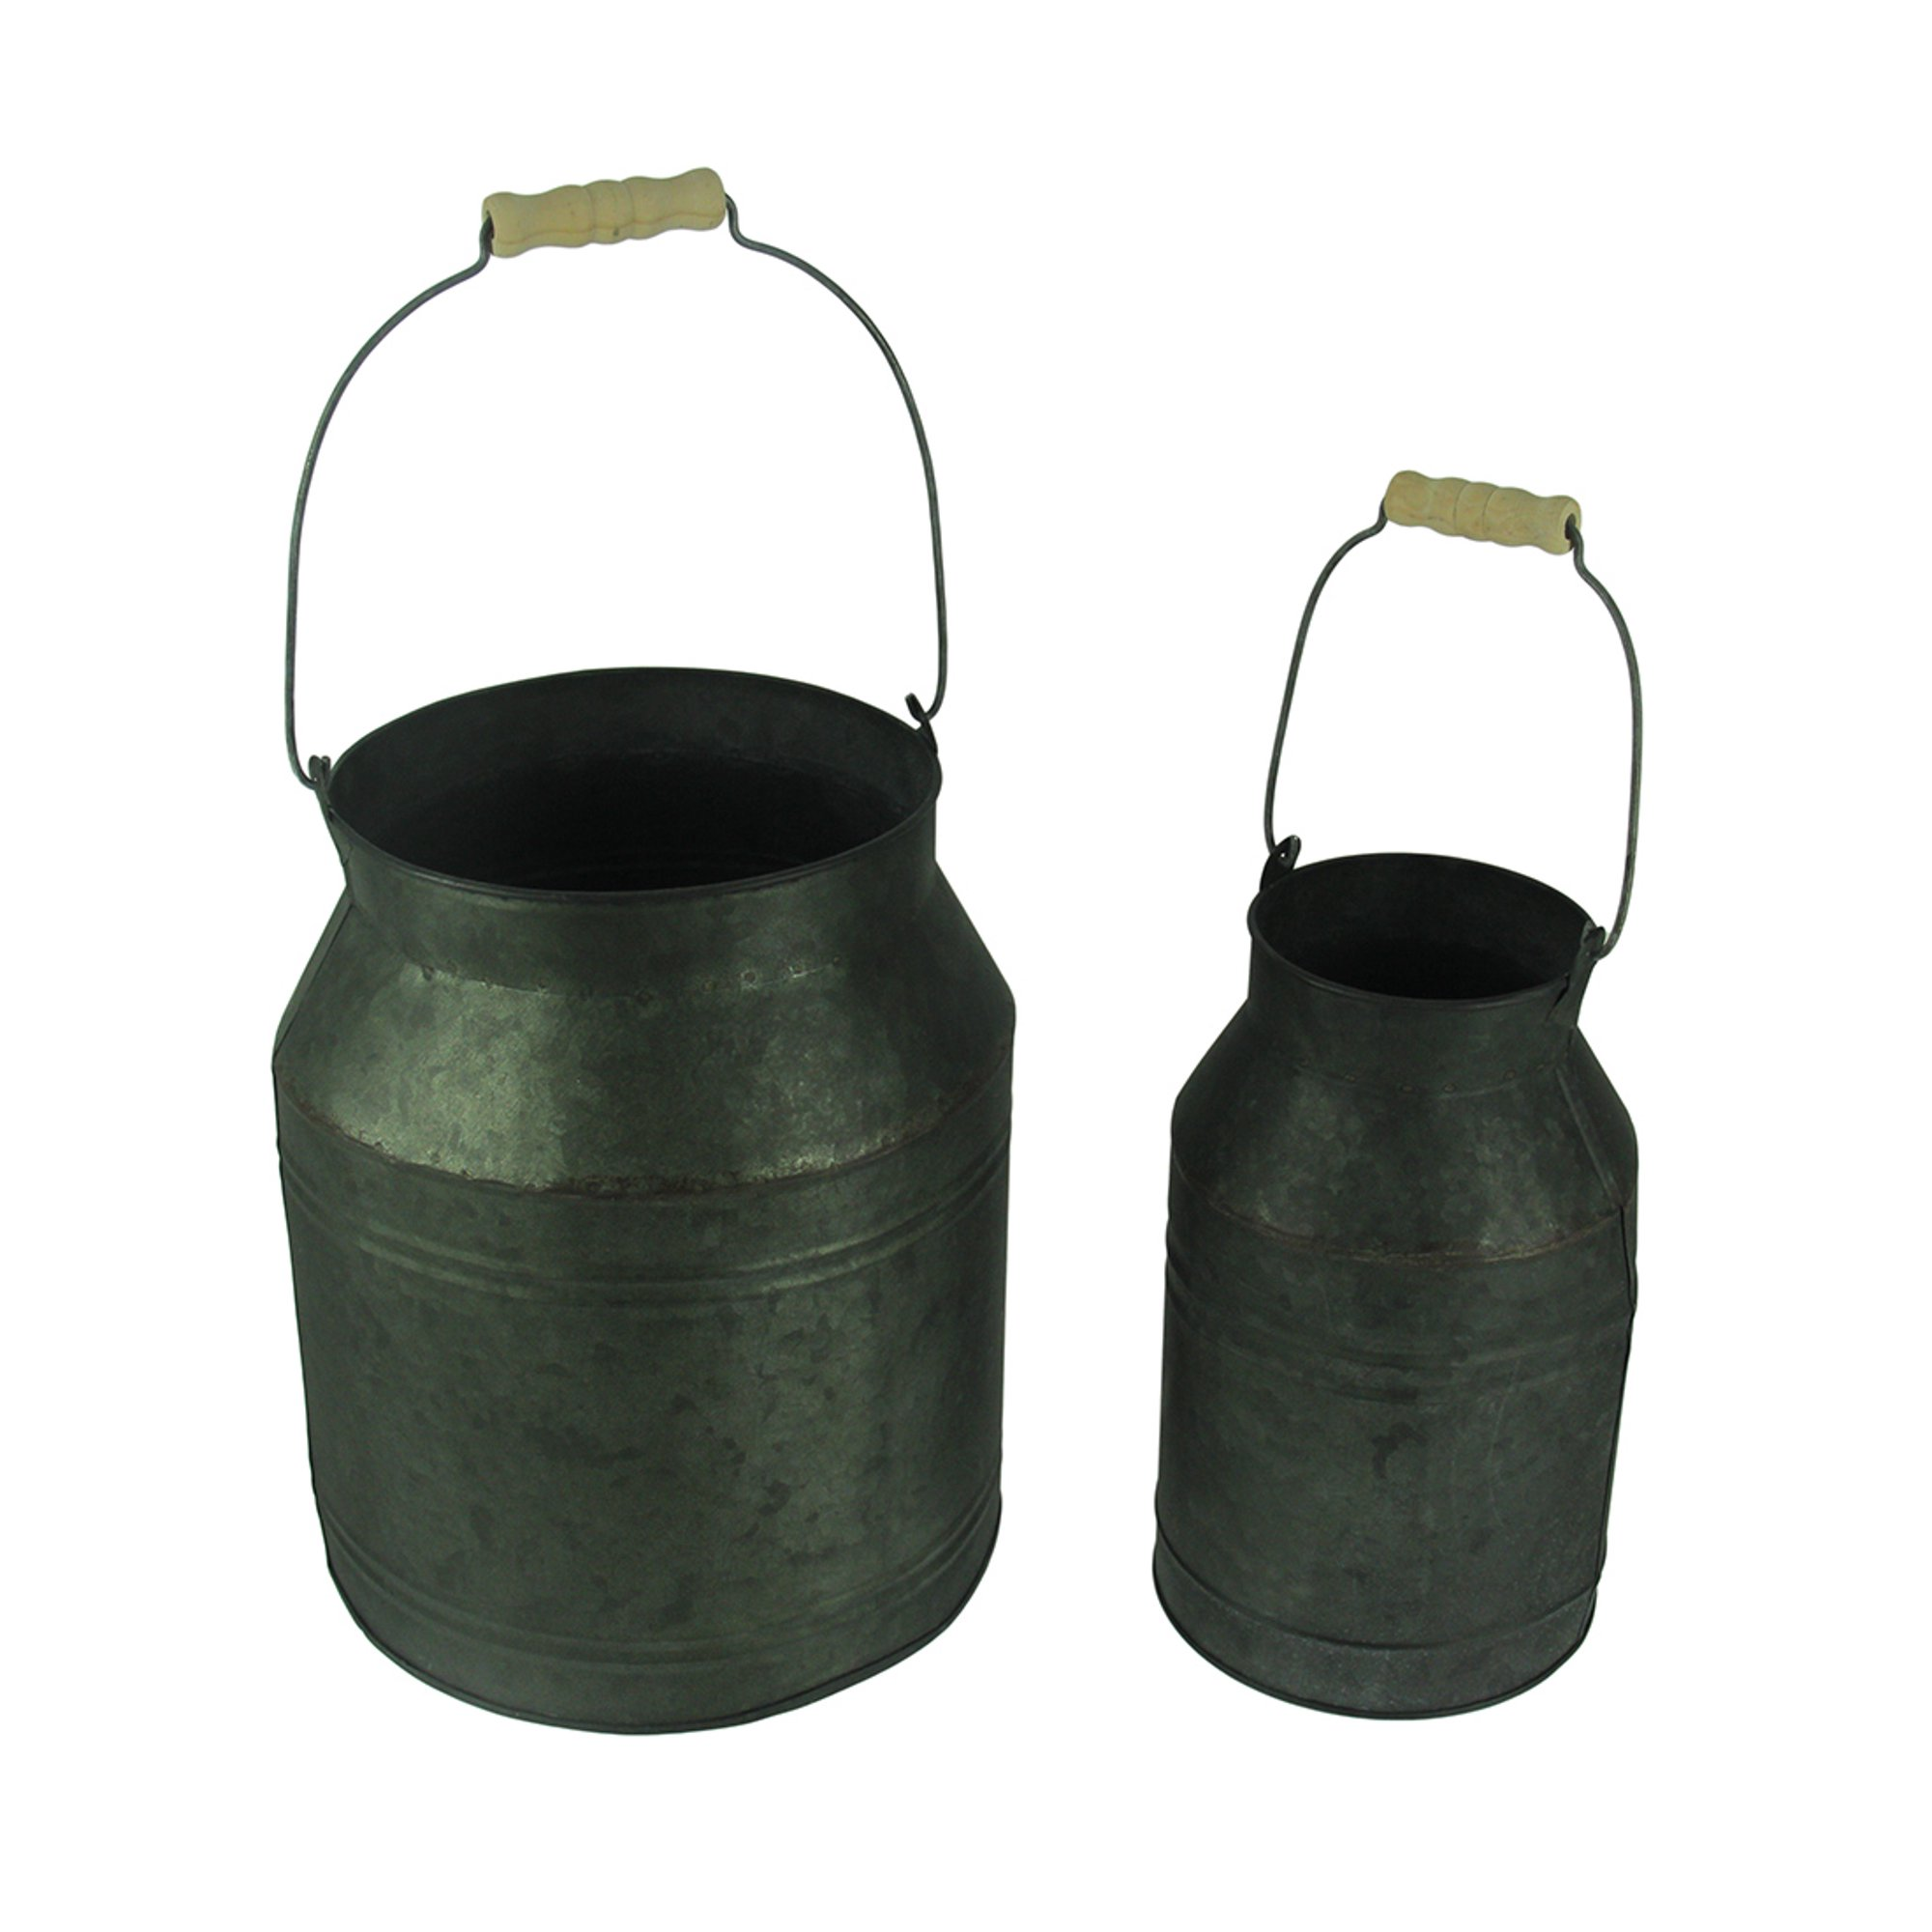 Rustic Galvanized Metal Milk Pail With Wood Handle Set Of 2